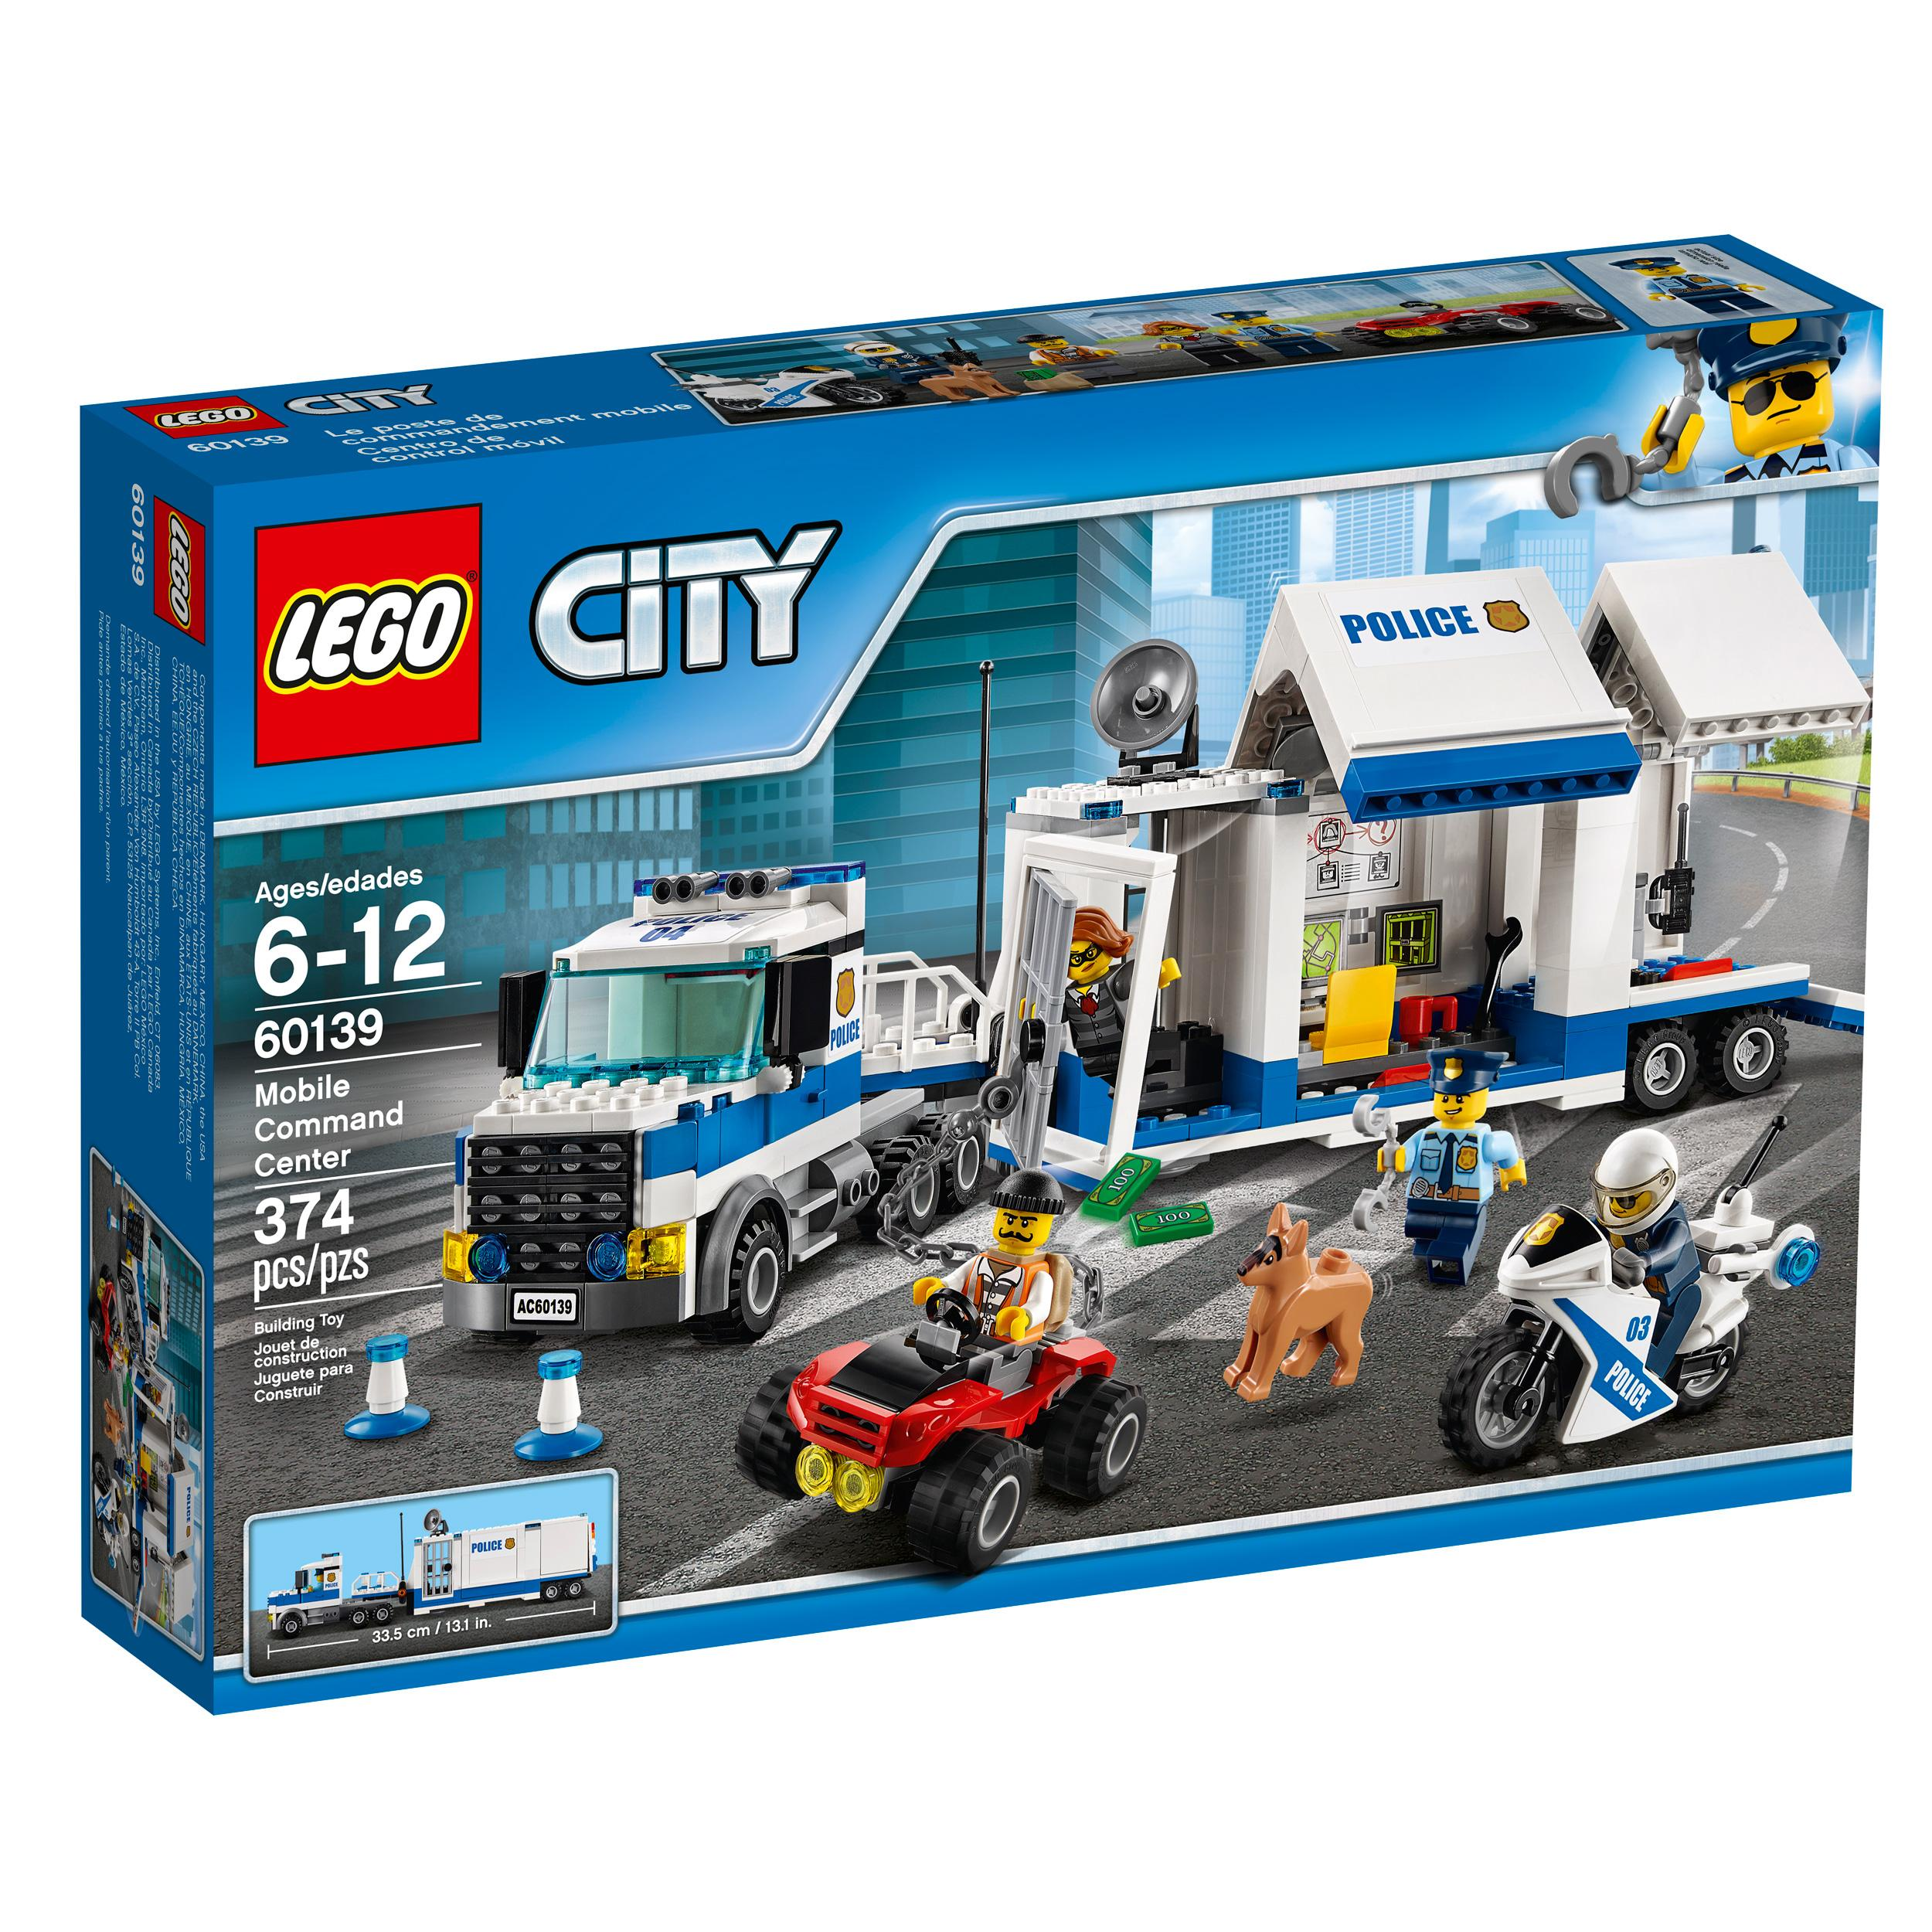 Lego City Toys : Amazon lego city police mobile command center